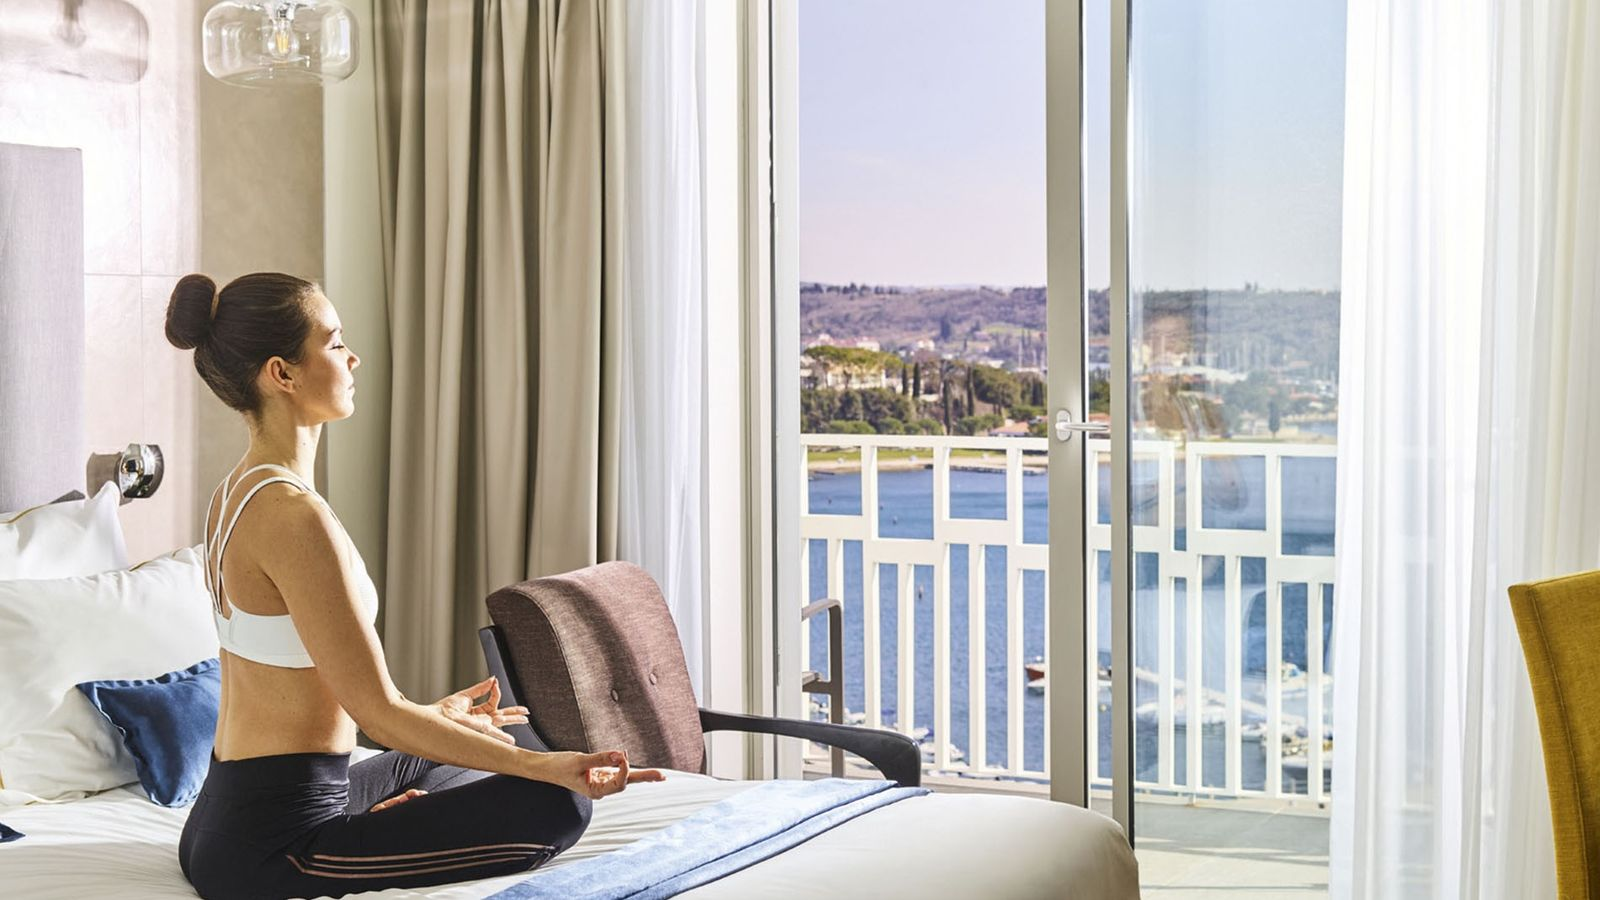 A woman meditating on the bed in her room overlooking the sea